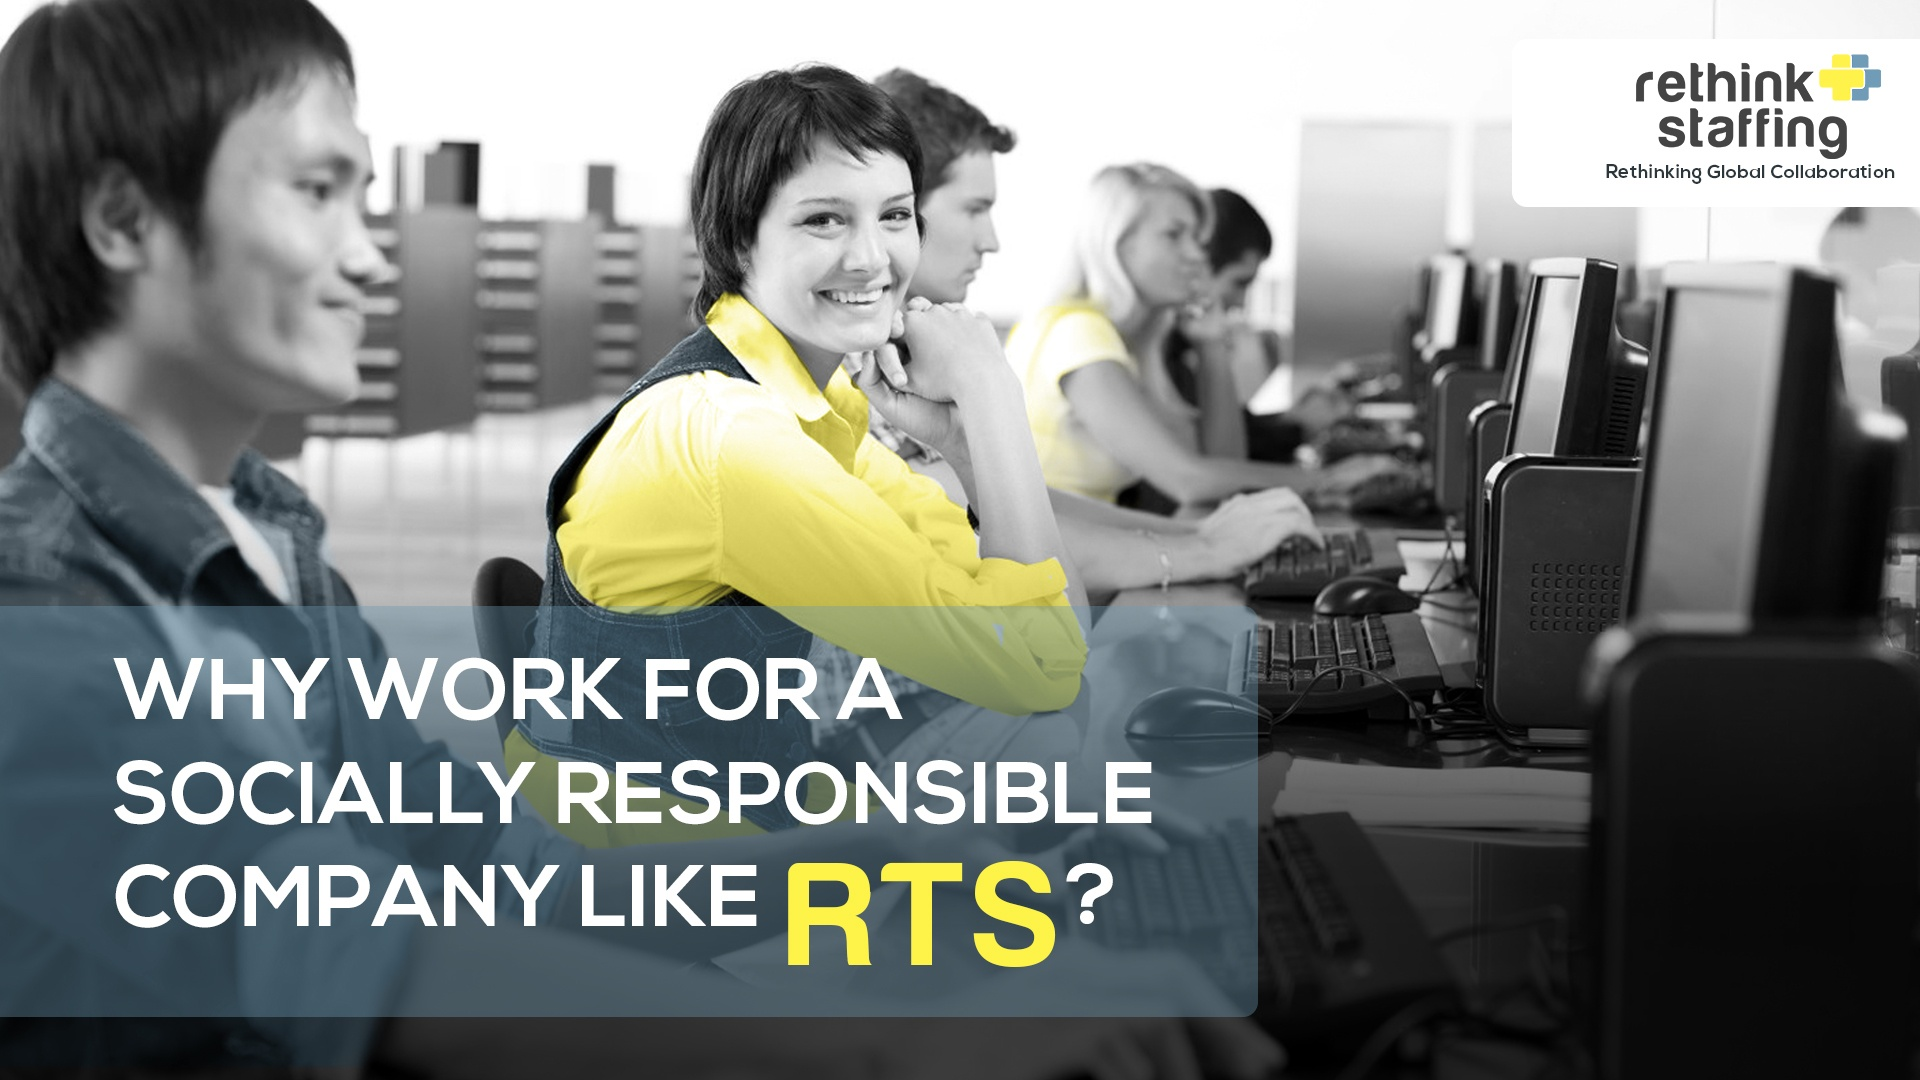 Why Work for a Socially Responsible Company like RTS?